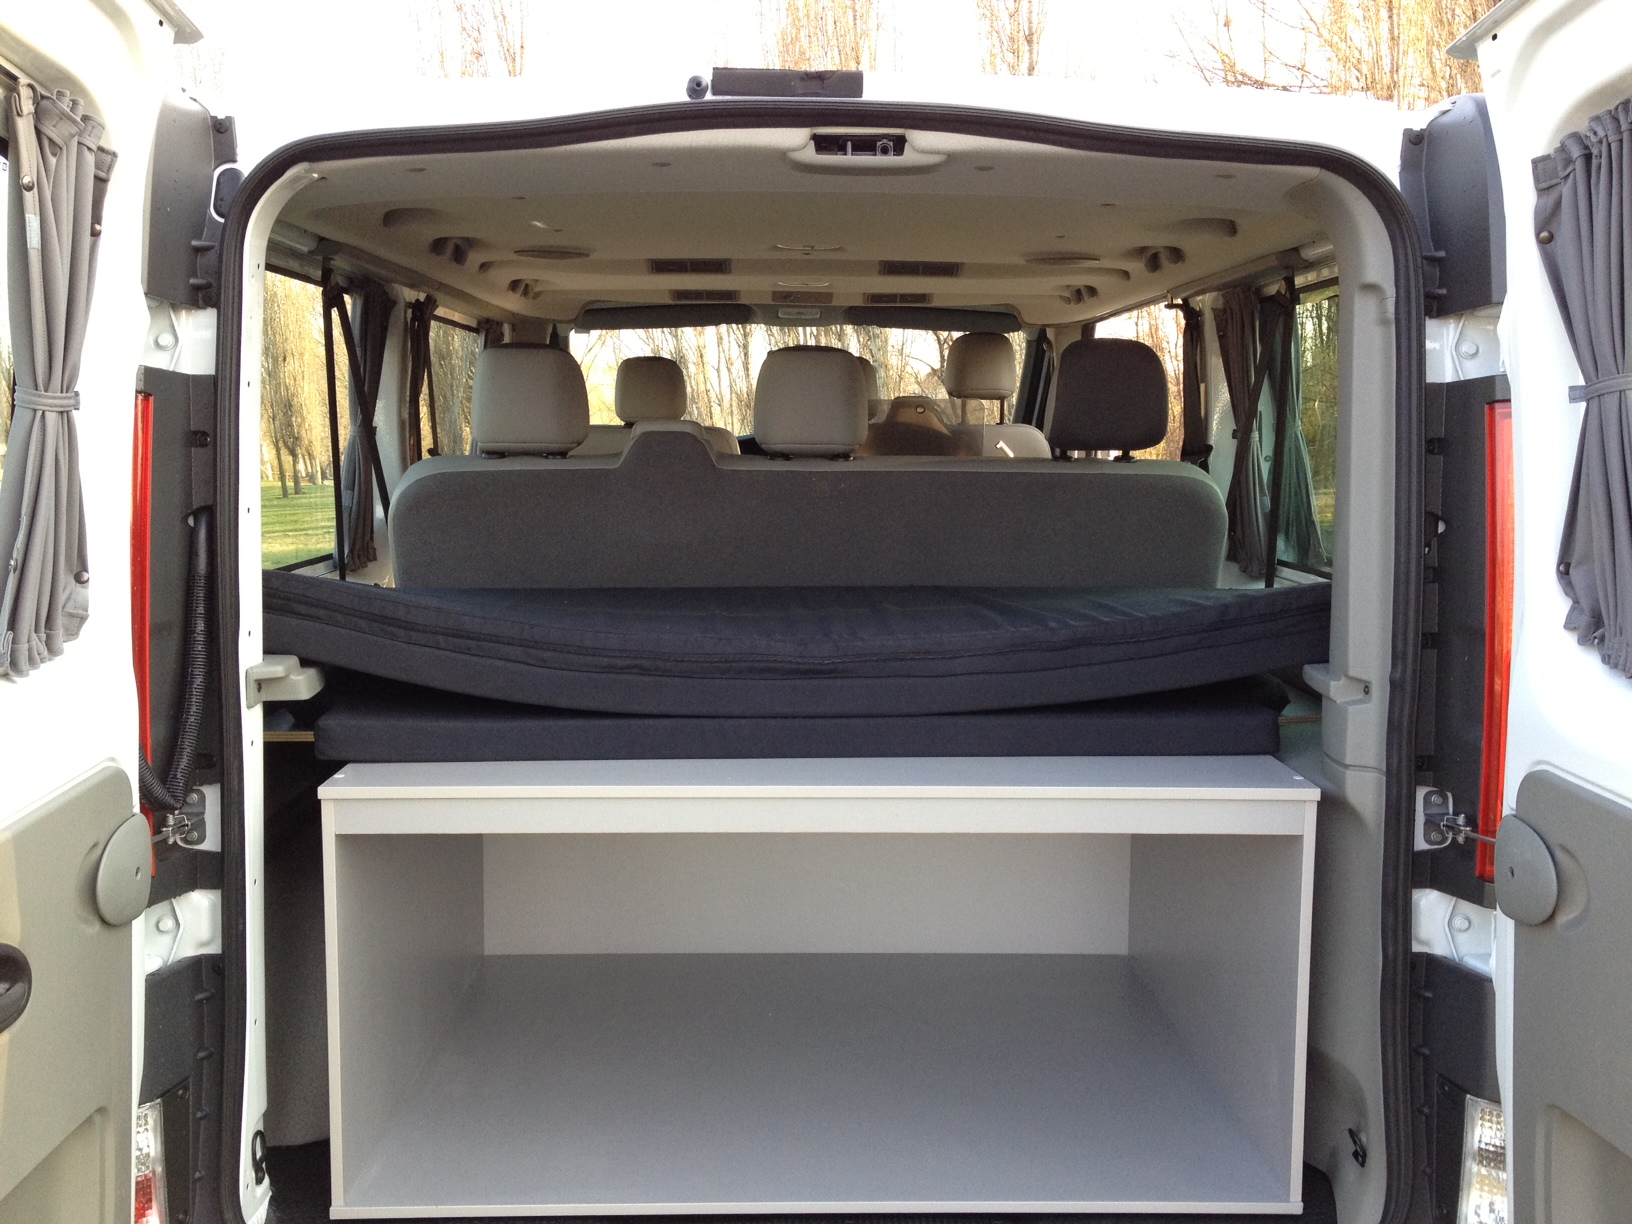 alquilar camper low cost modelos nissan primastar o opel vivaro. Black Bedroom Furniture Sets. Home Design Ideas